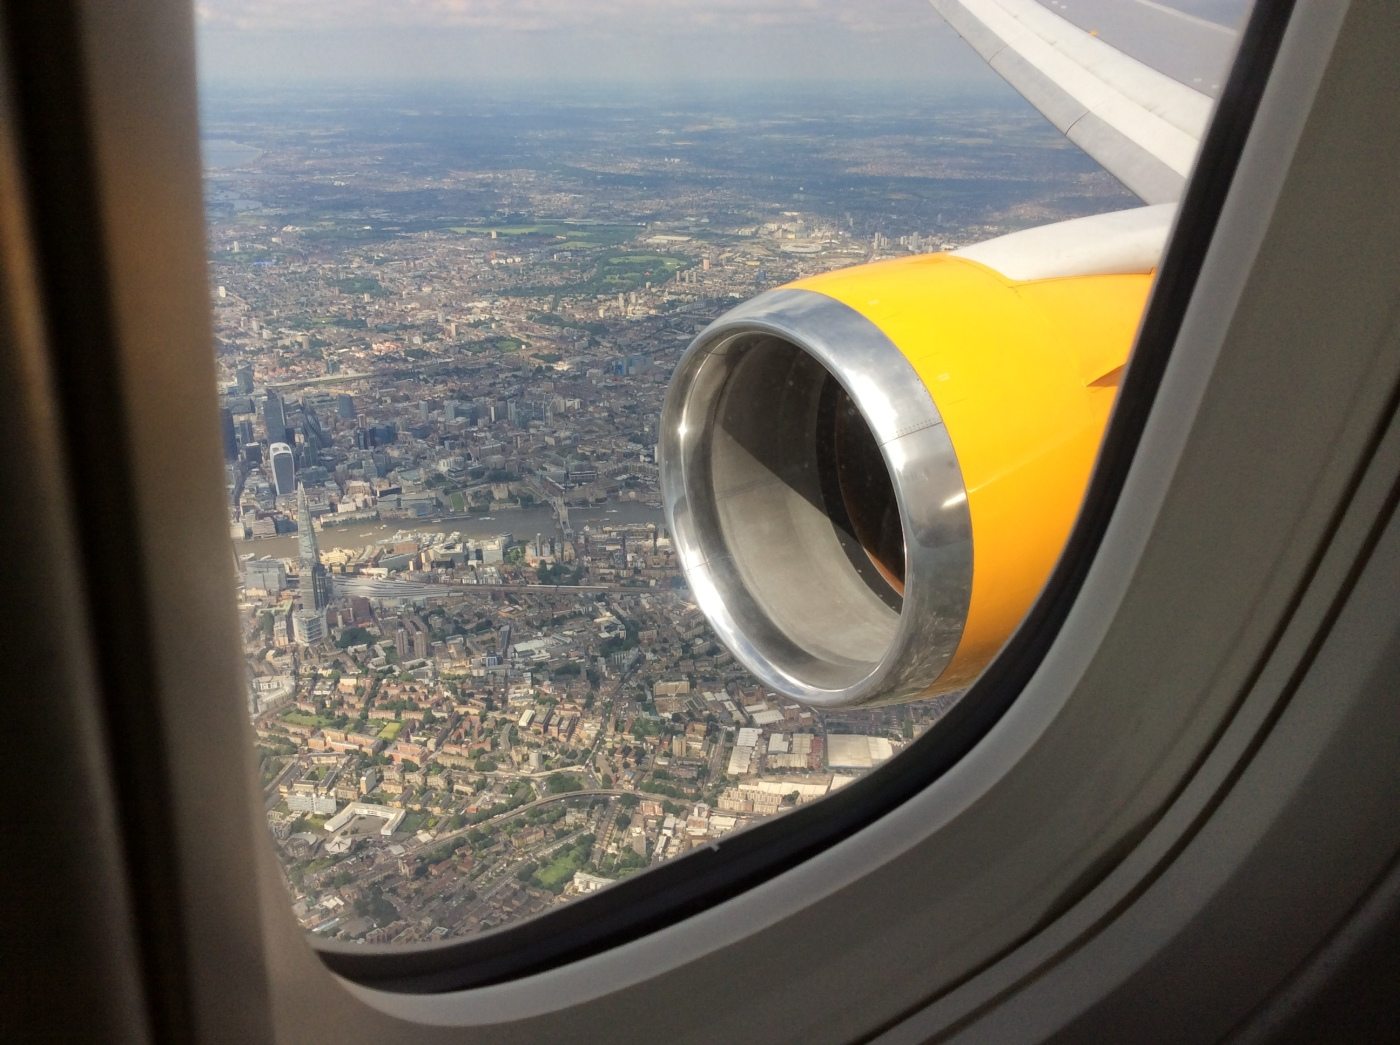 View of London from the plane